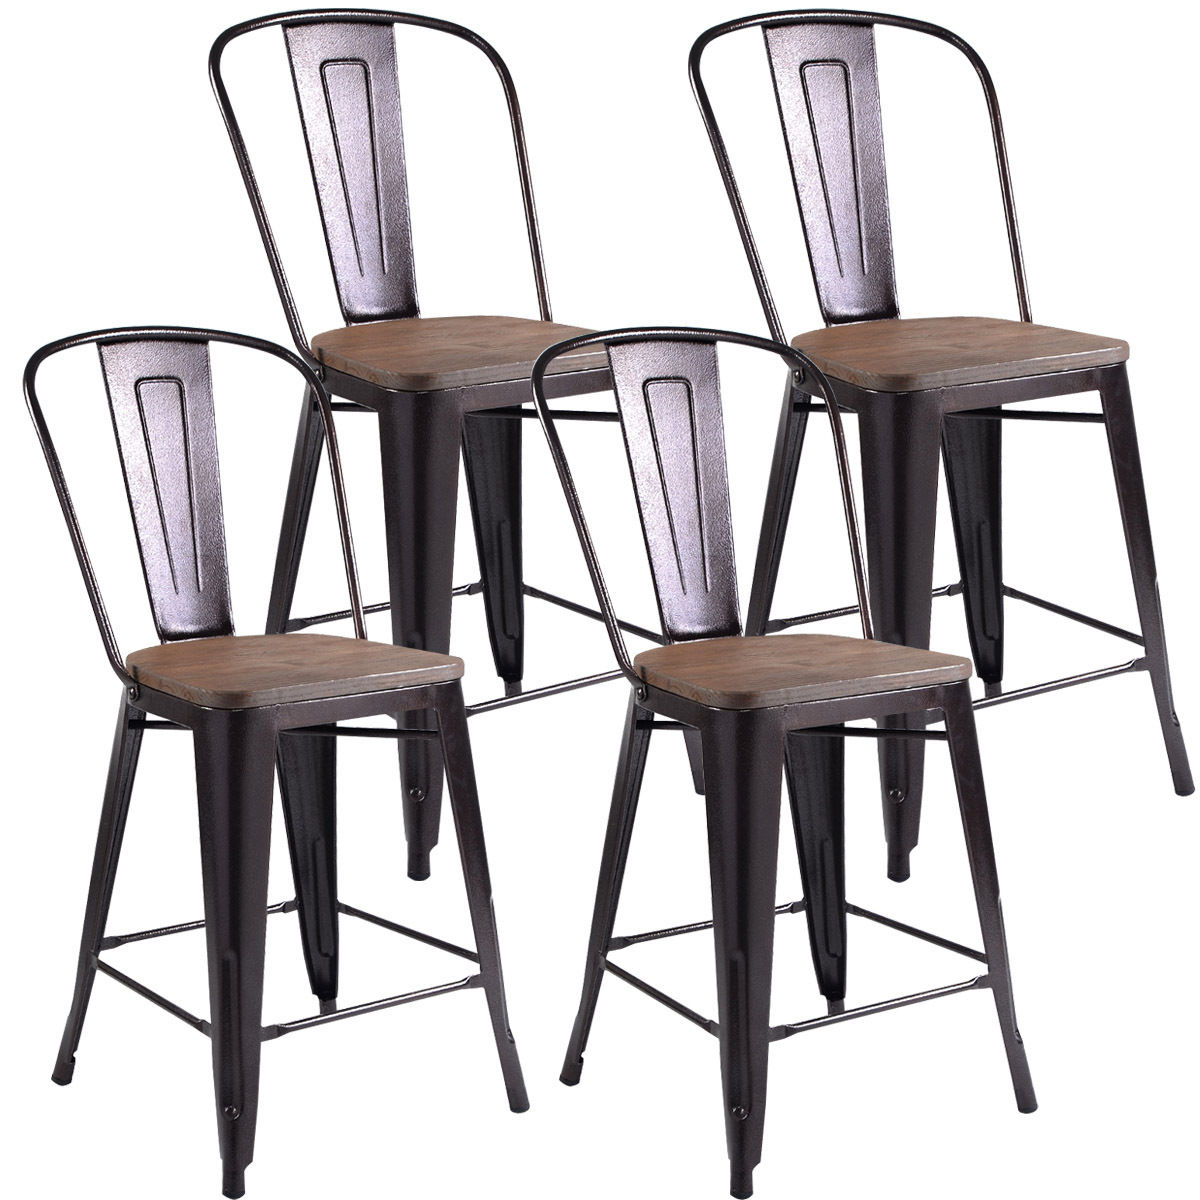 Goplus Copper Set Of 4 Metal Wood Counter Stool Dining Kitchen Bar Chairs Rustic